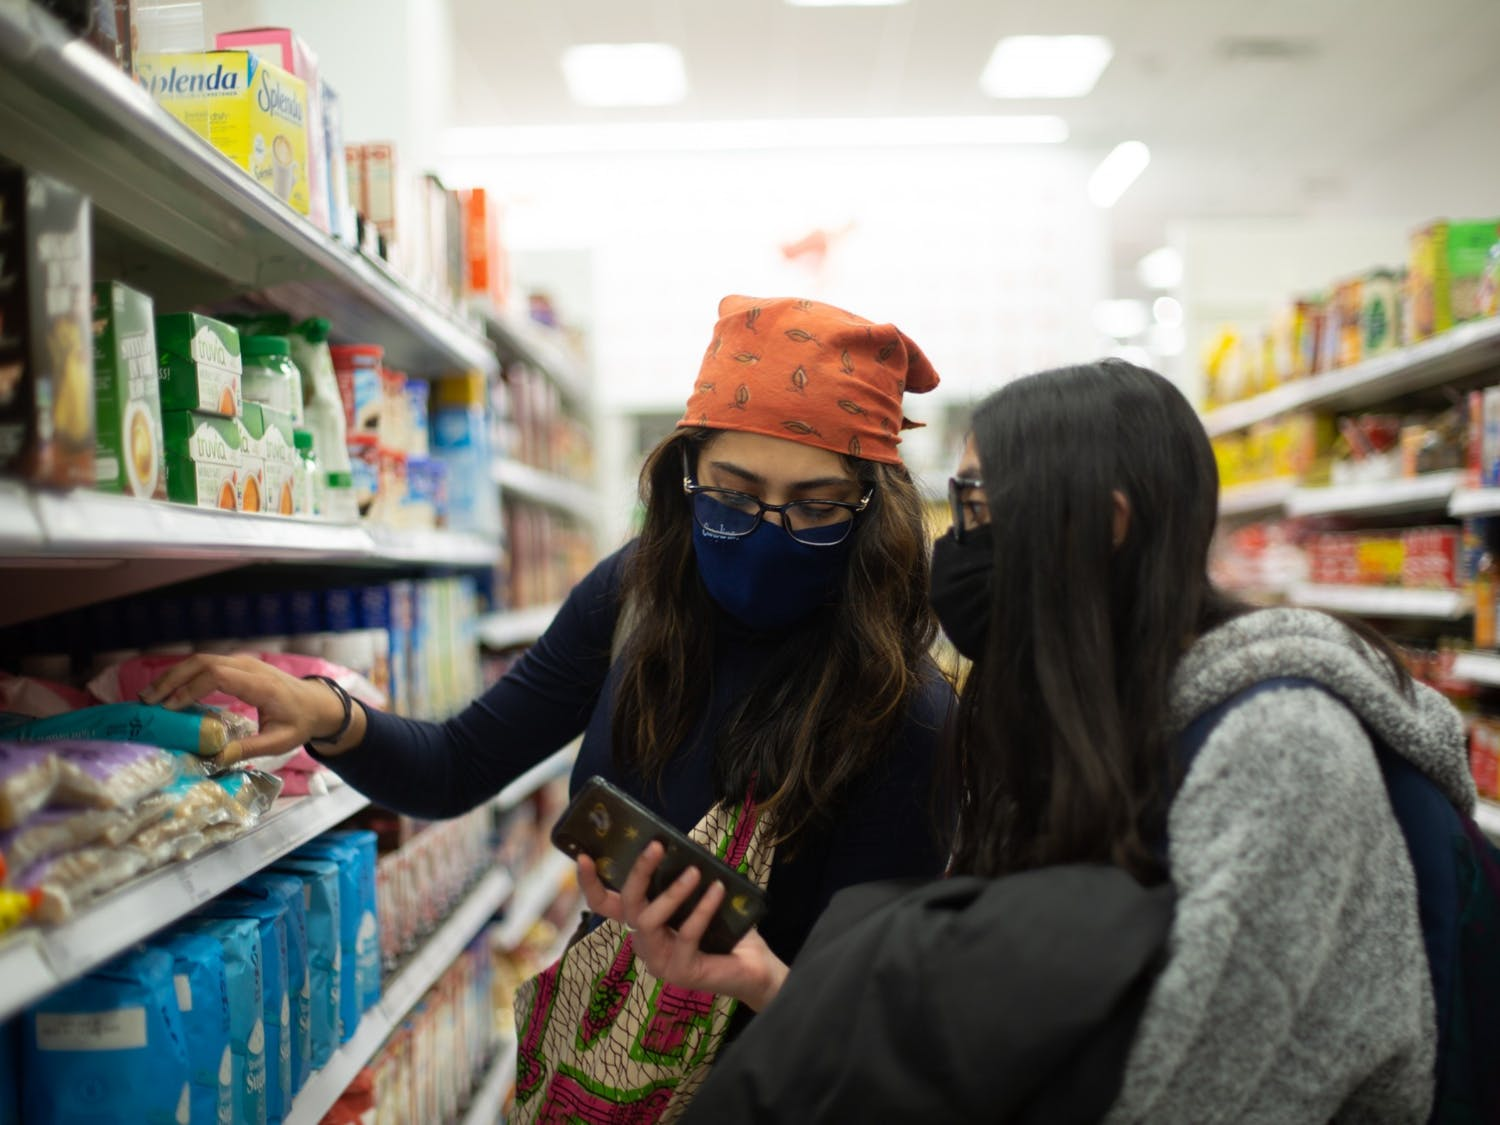 Juniors Pareen Bhagat (left) and Disha Dhamani (right) shop for food at the Target on Franklin Street on Friday, March 19, 2021.